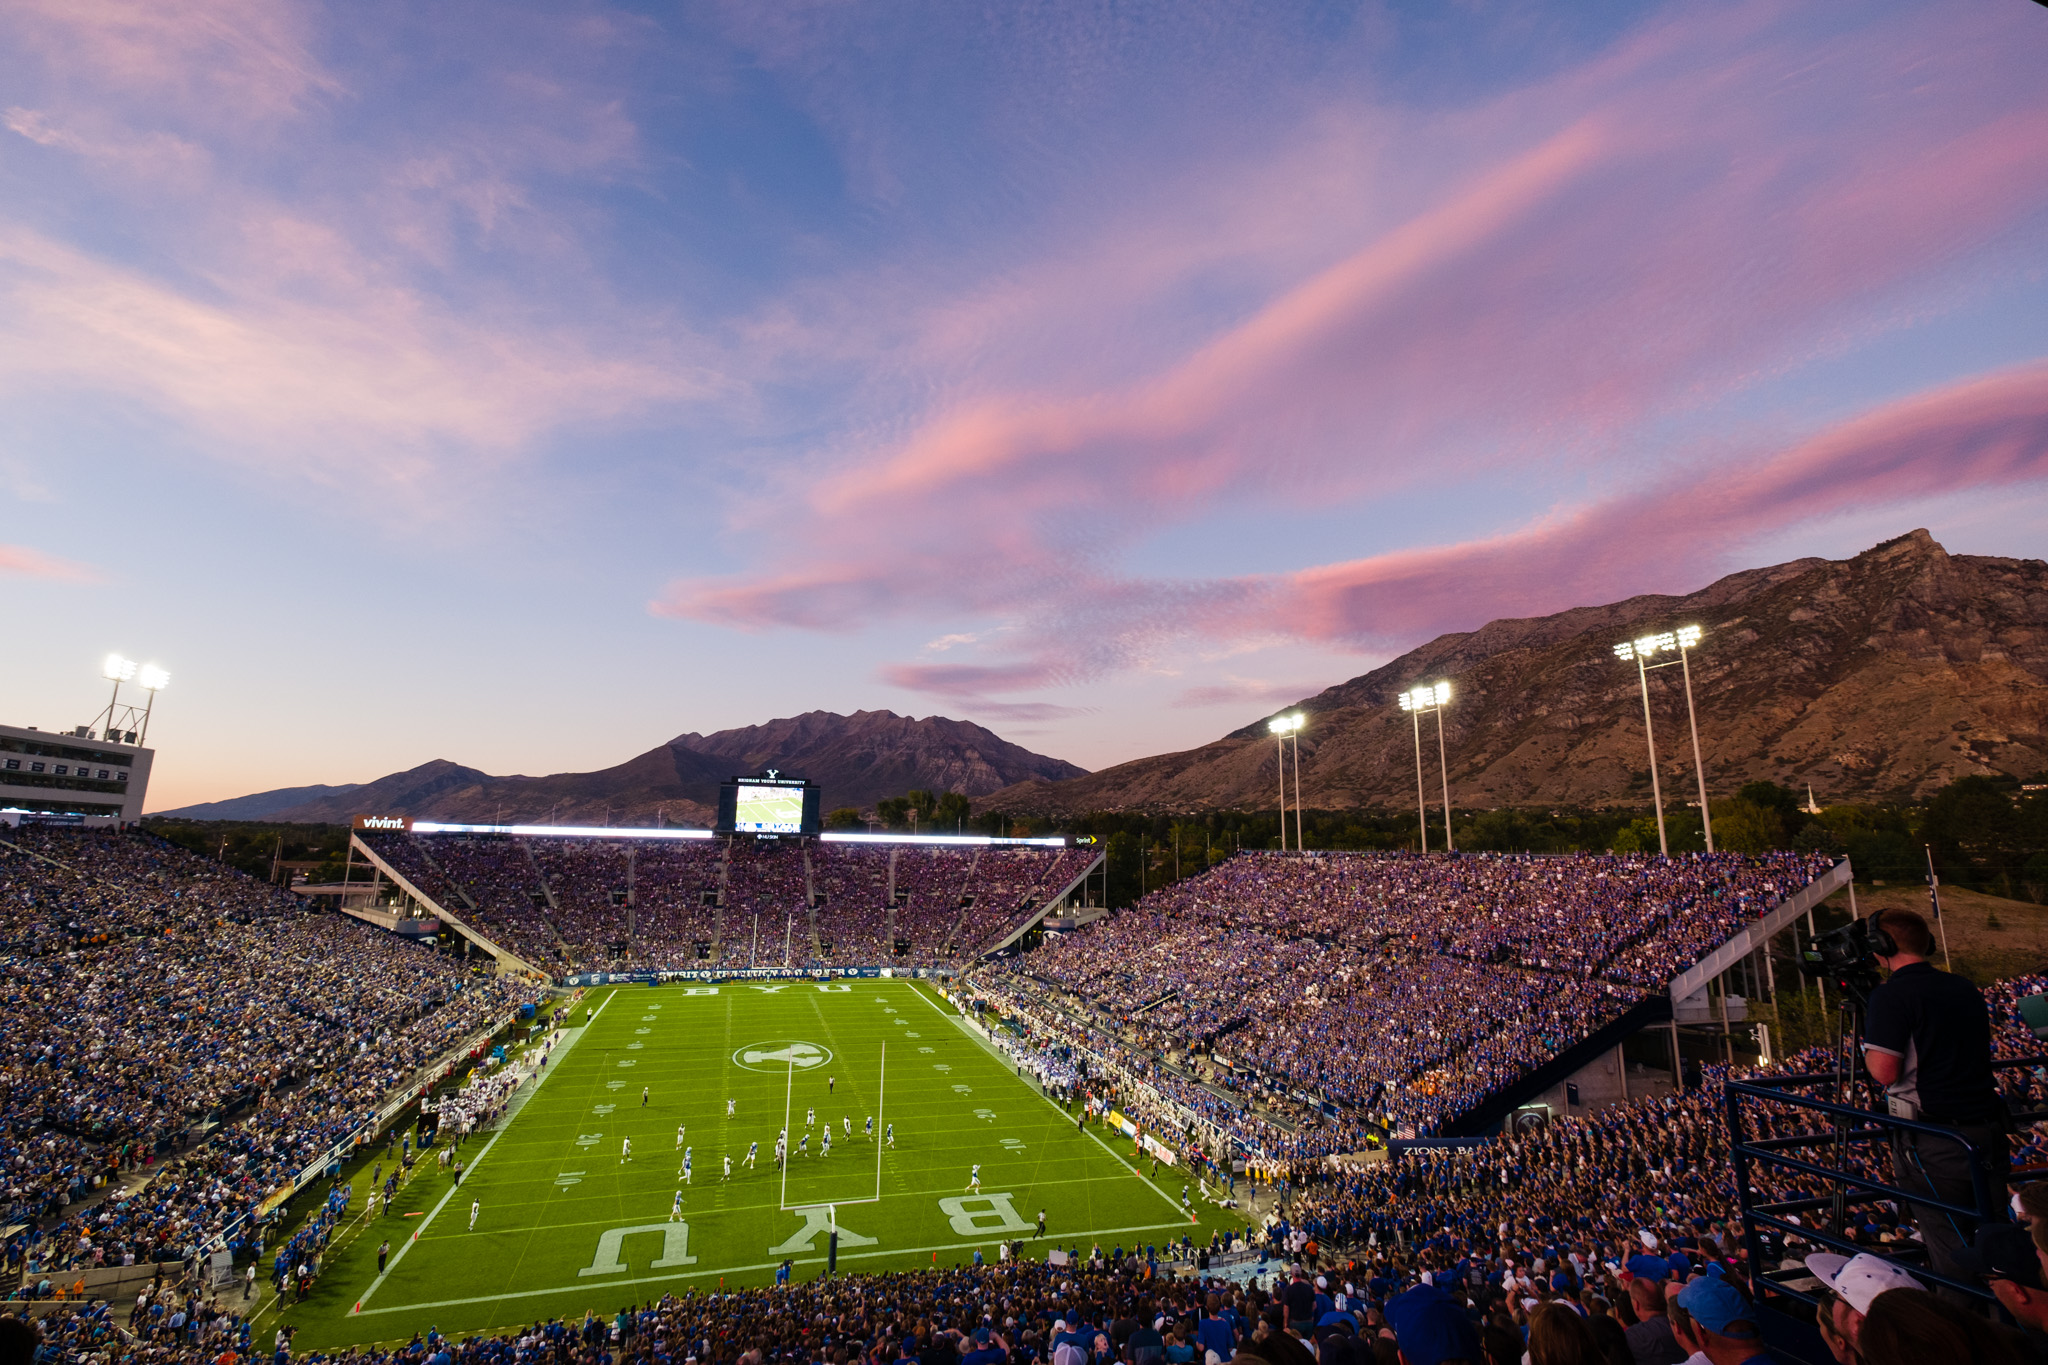 Sunset over Brigham Young University's Lavell Edwards Stadium